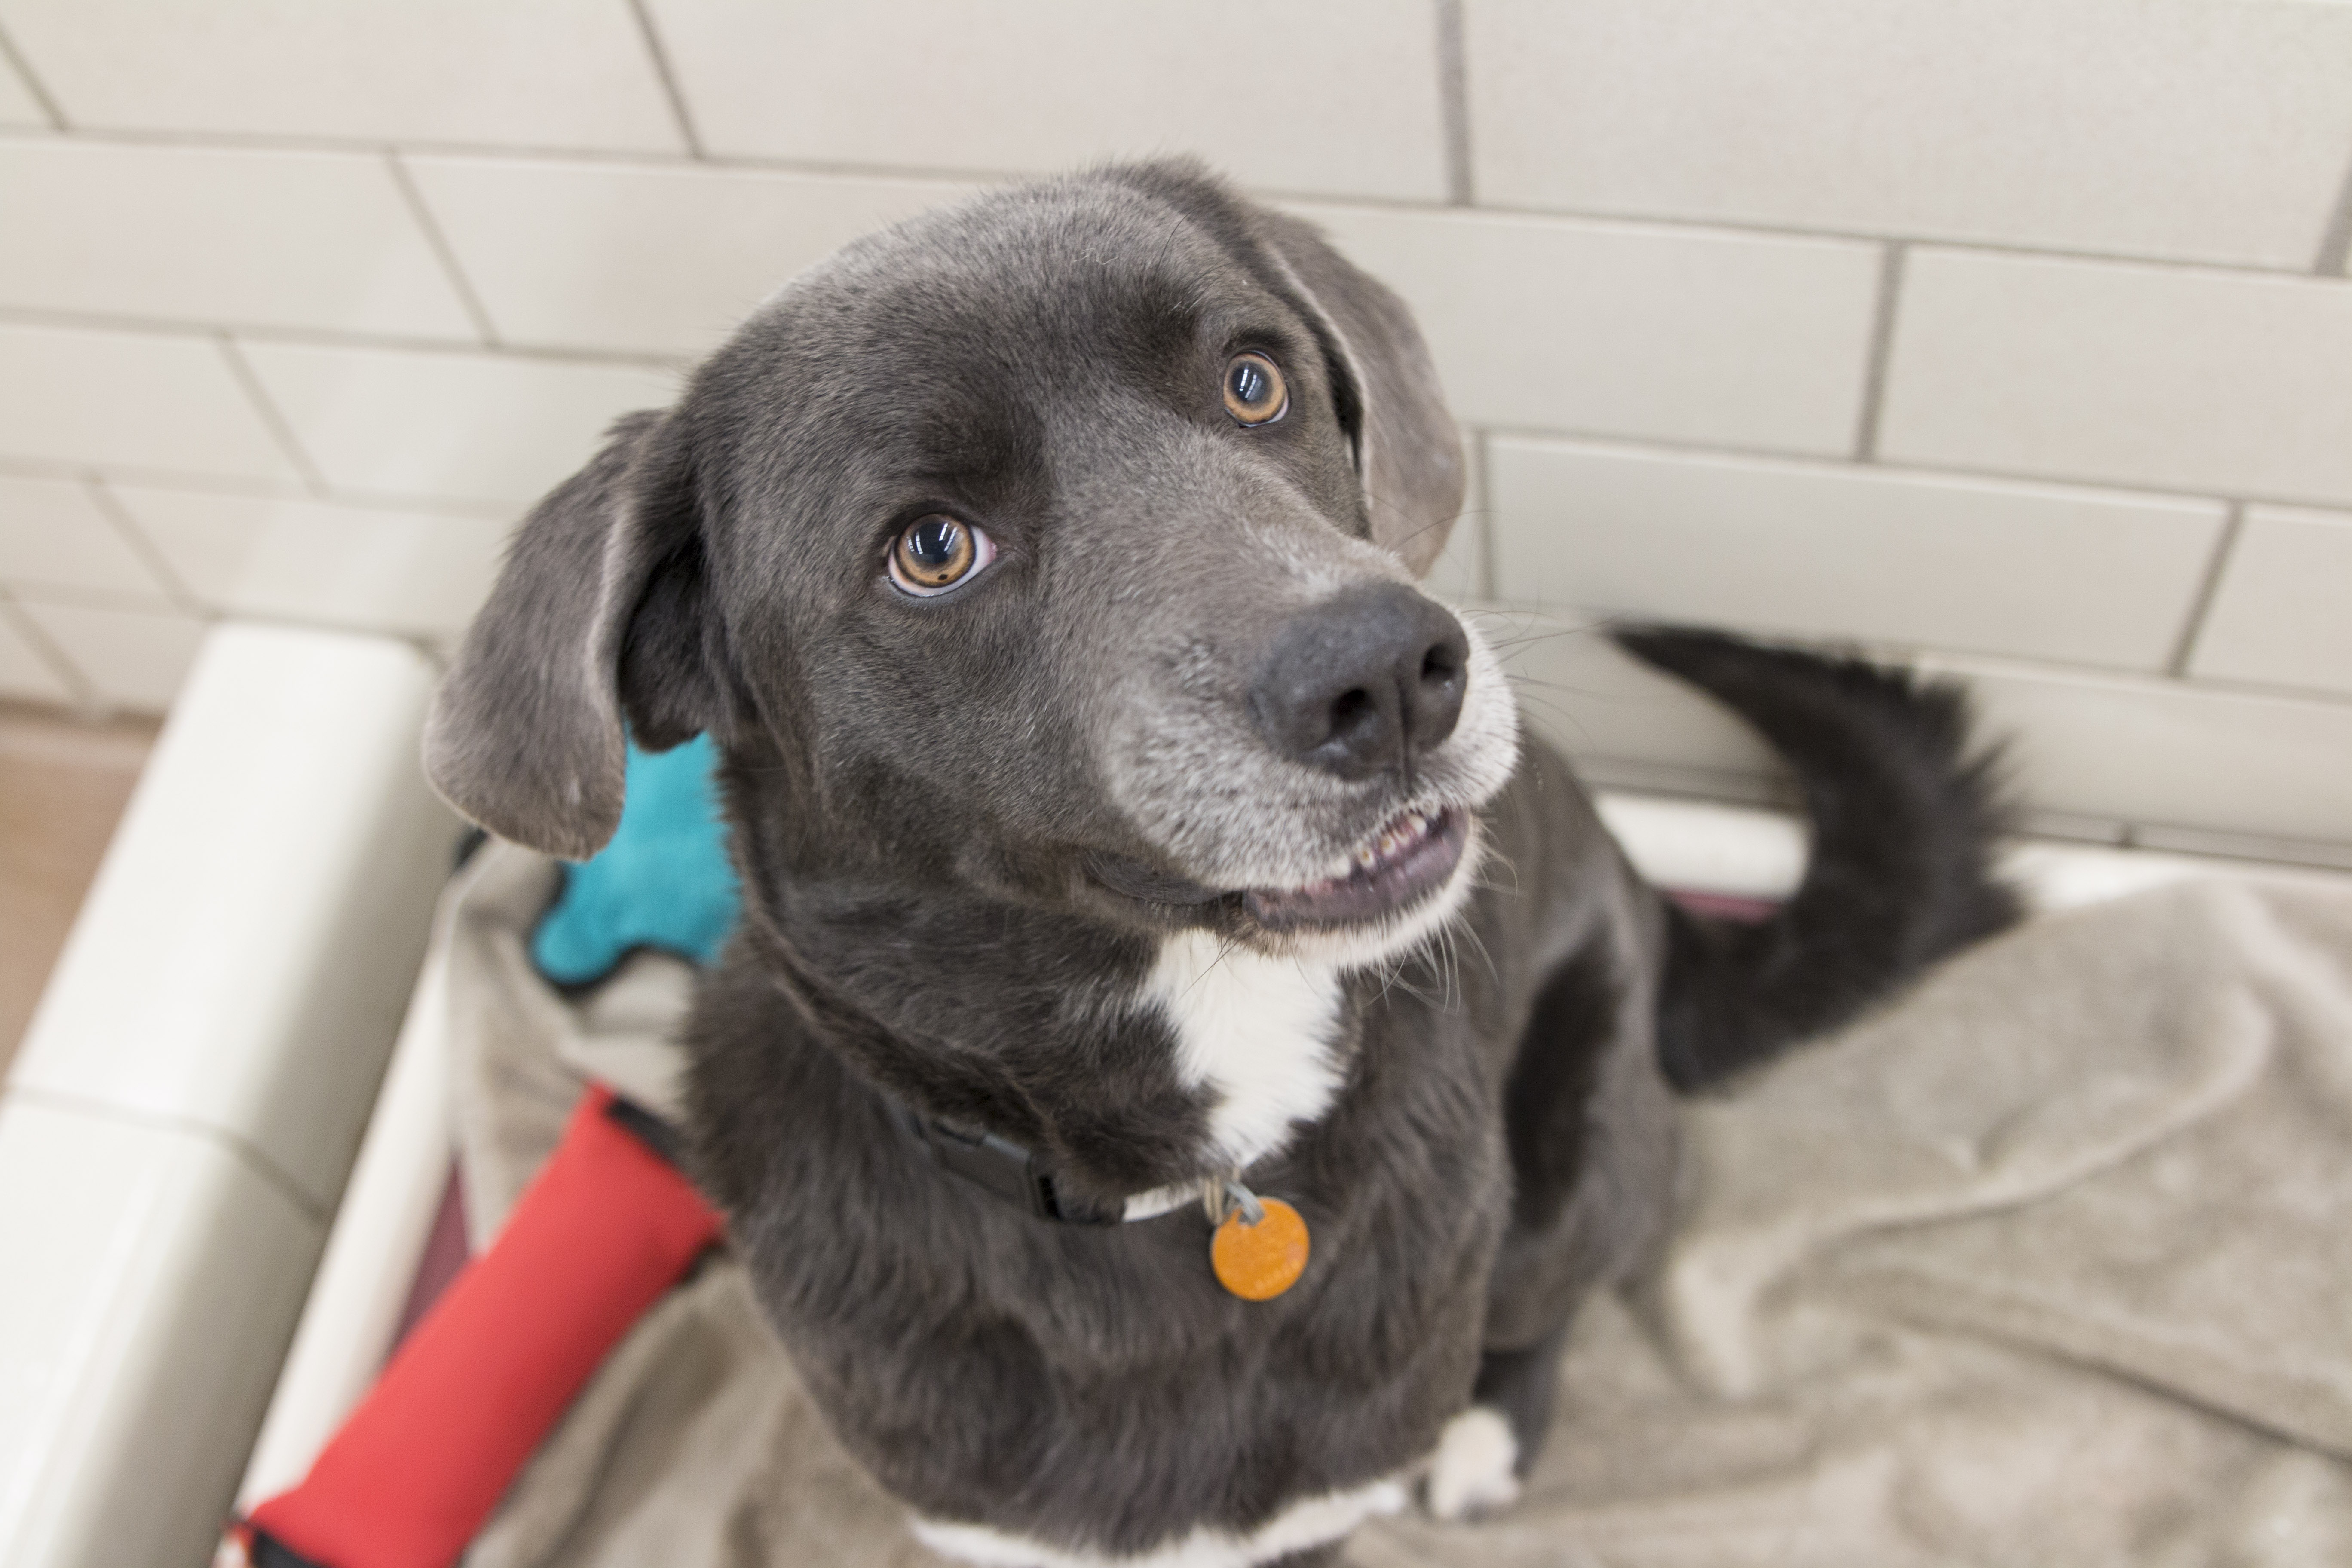 Roo is a 3-year-old Labrador Retriever mix